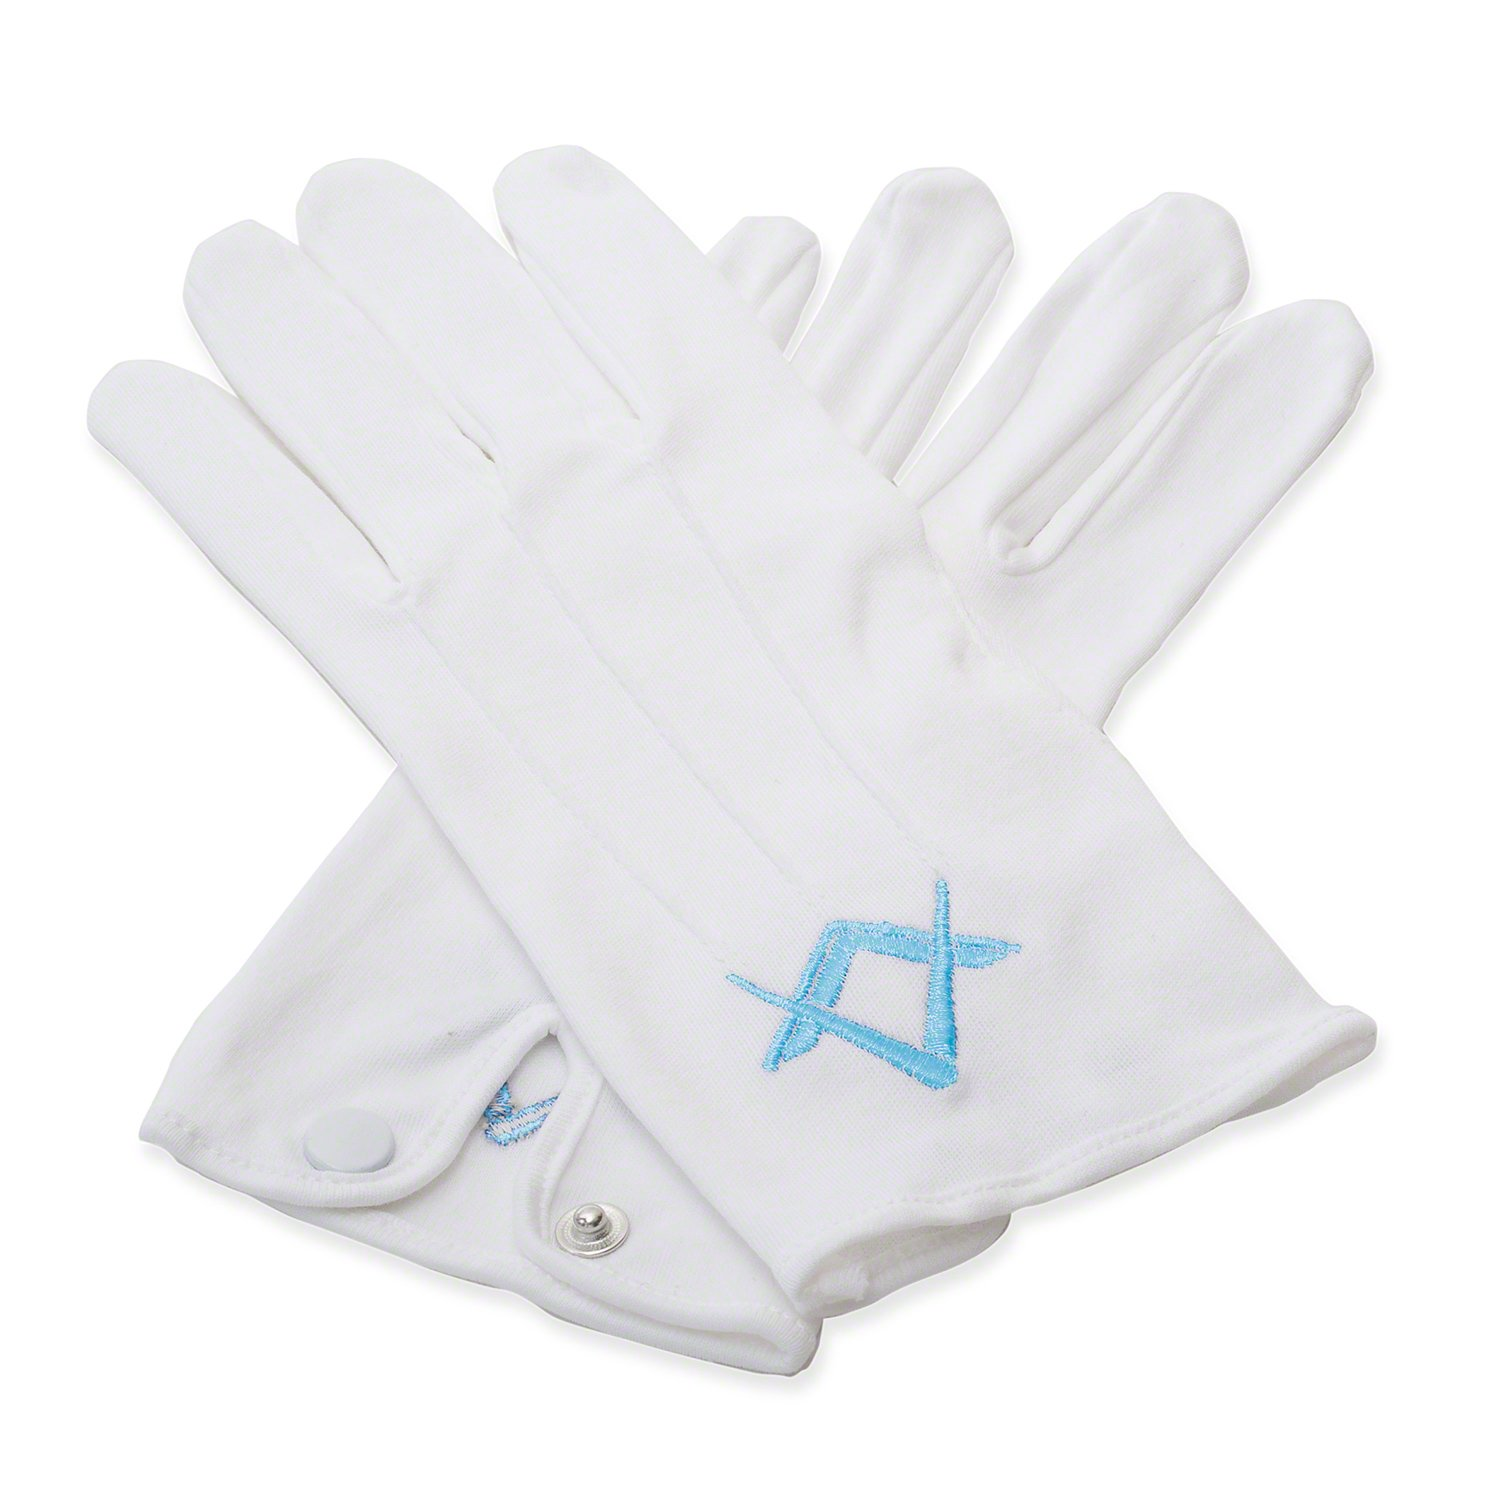 Craft White 100% Cotton Gloves with Craft Blue Sq & Compass - Large Masonic